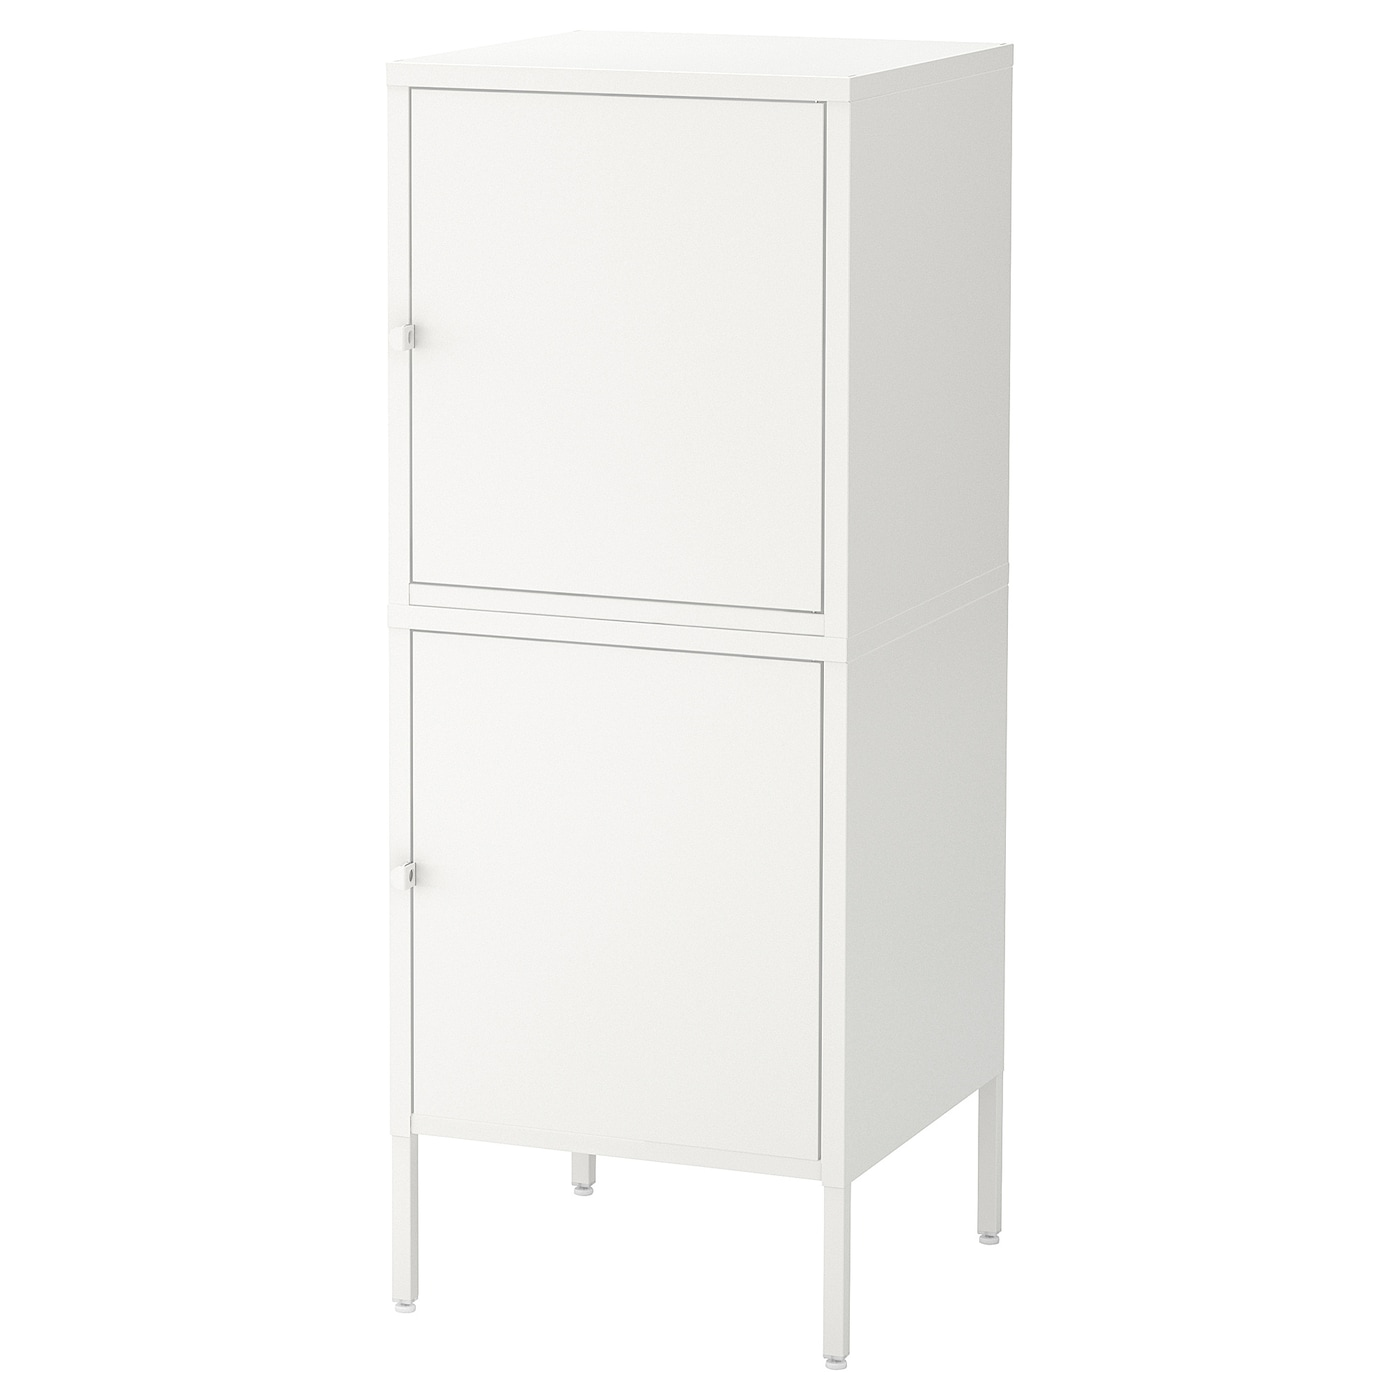 boxes solutions modern well cabinet cabinets closets kitchen storage shall with journal ikea designed garage